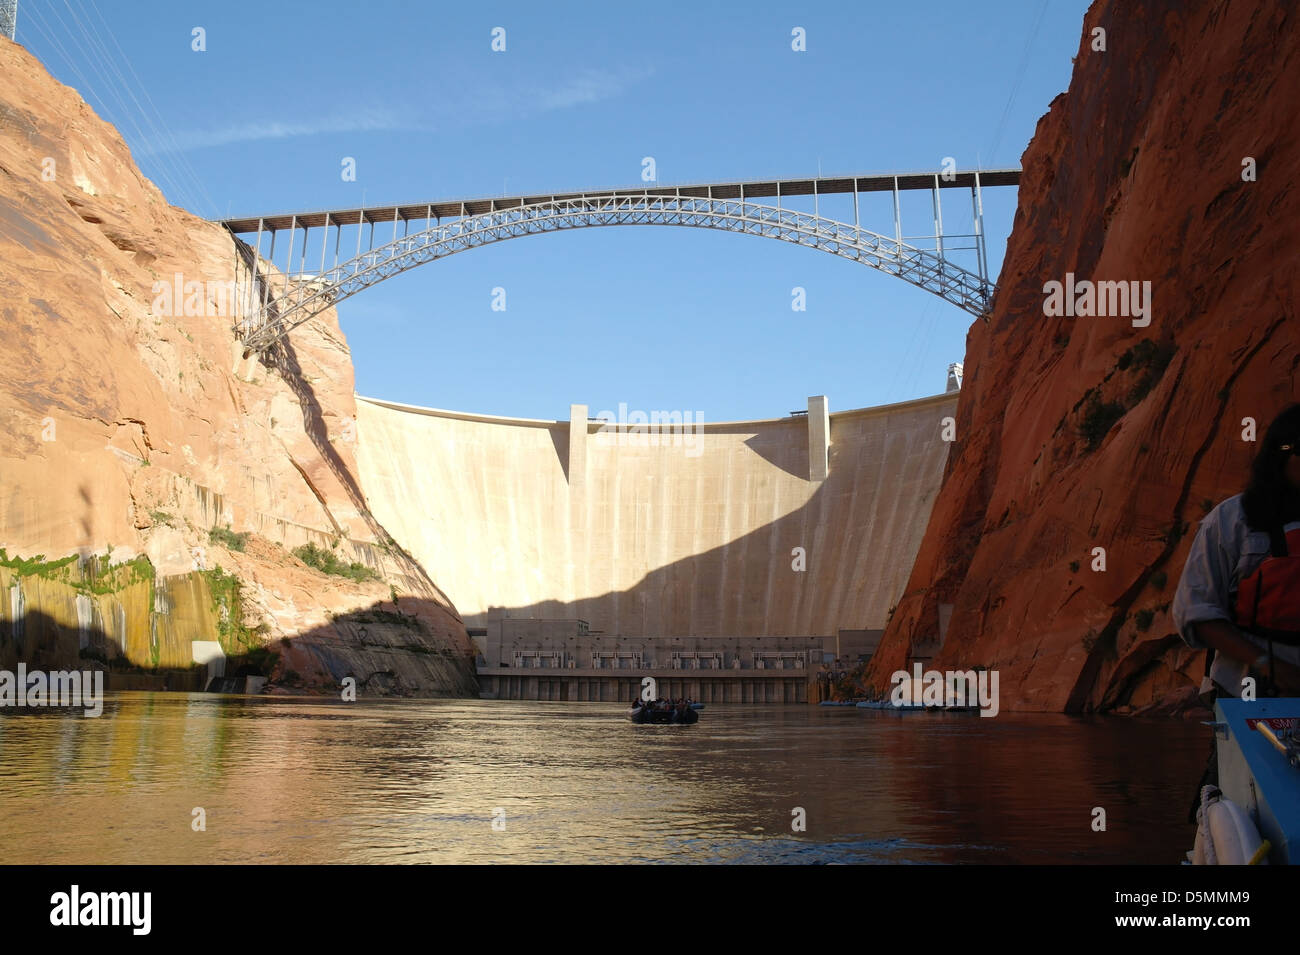 Colorado River Discovery >> Blue Sky View Colorado River Discovery Rafts In Canyon Looking